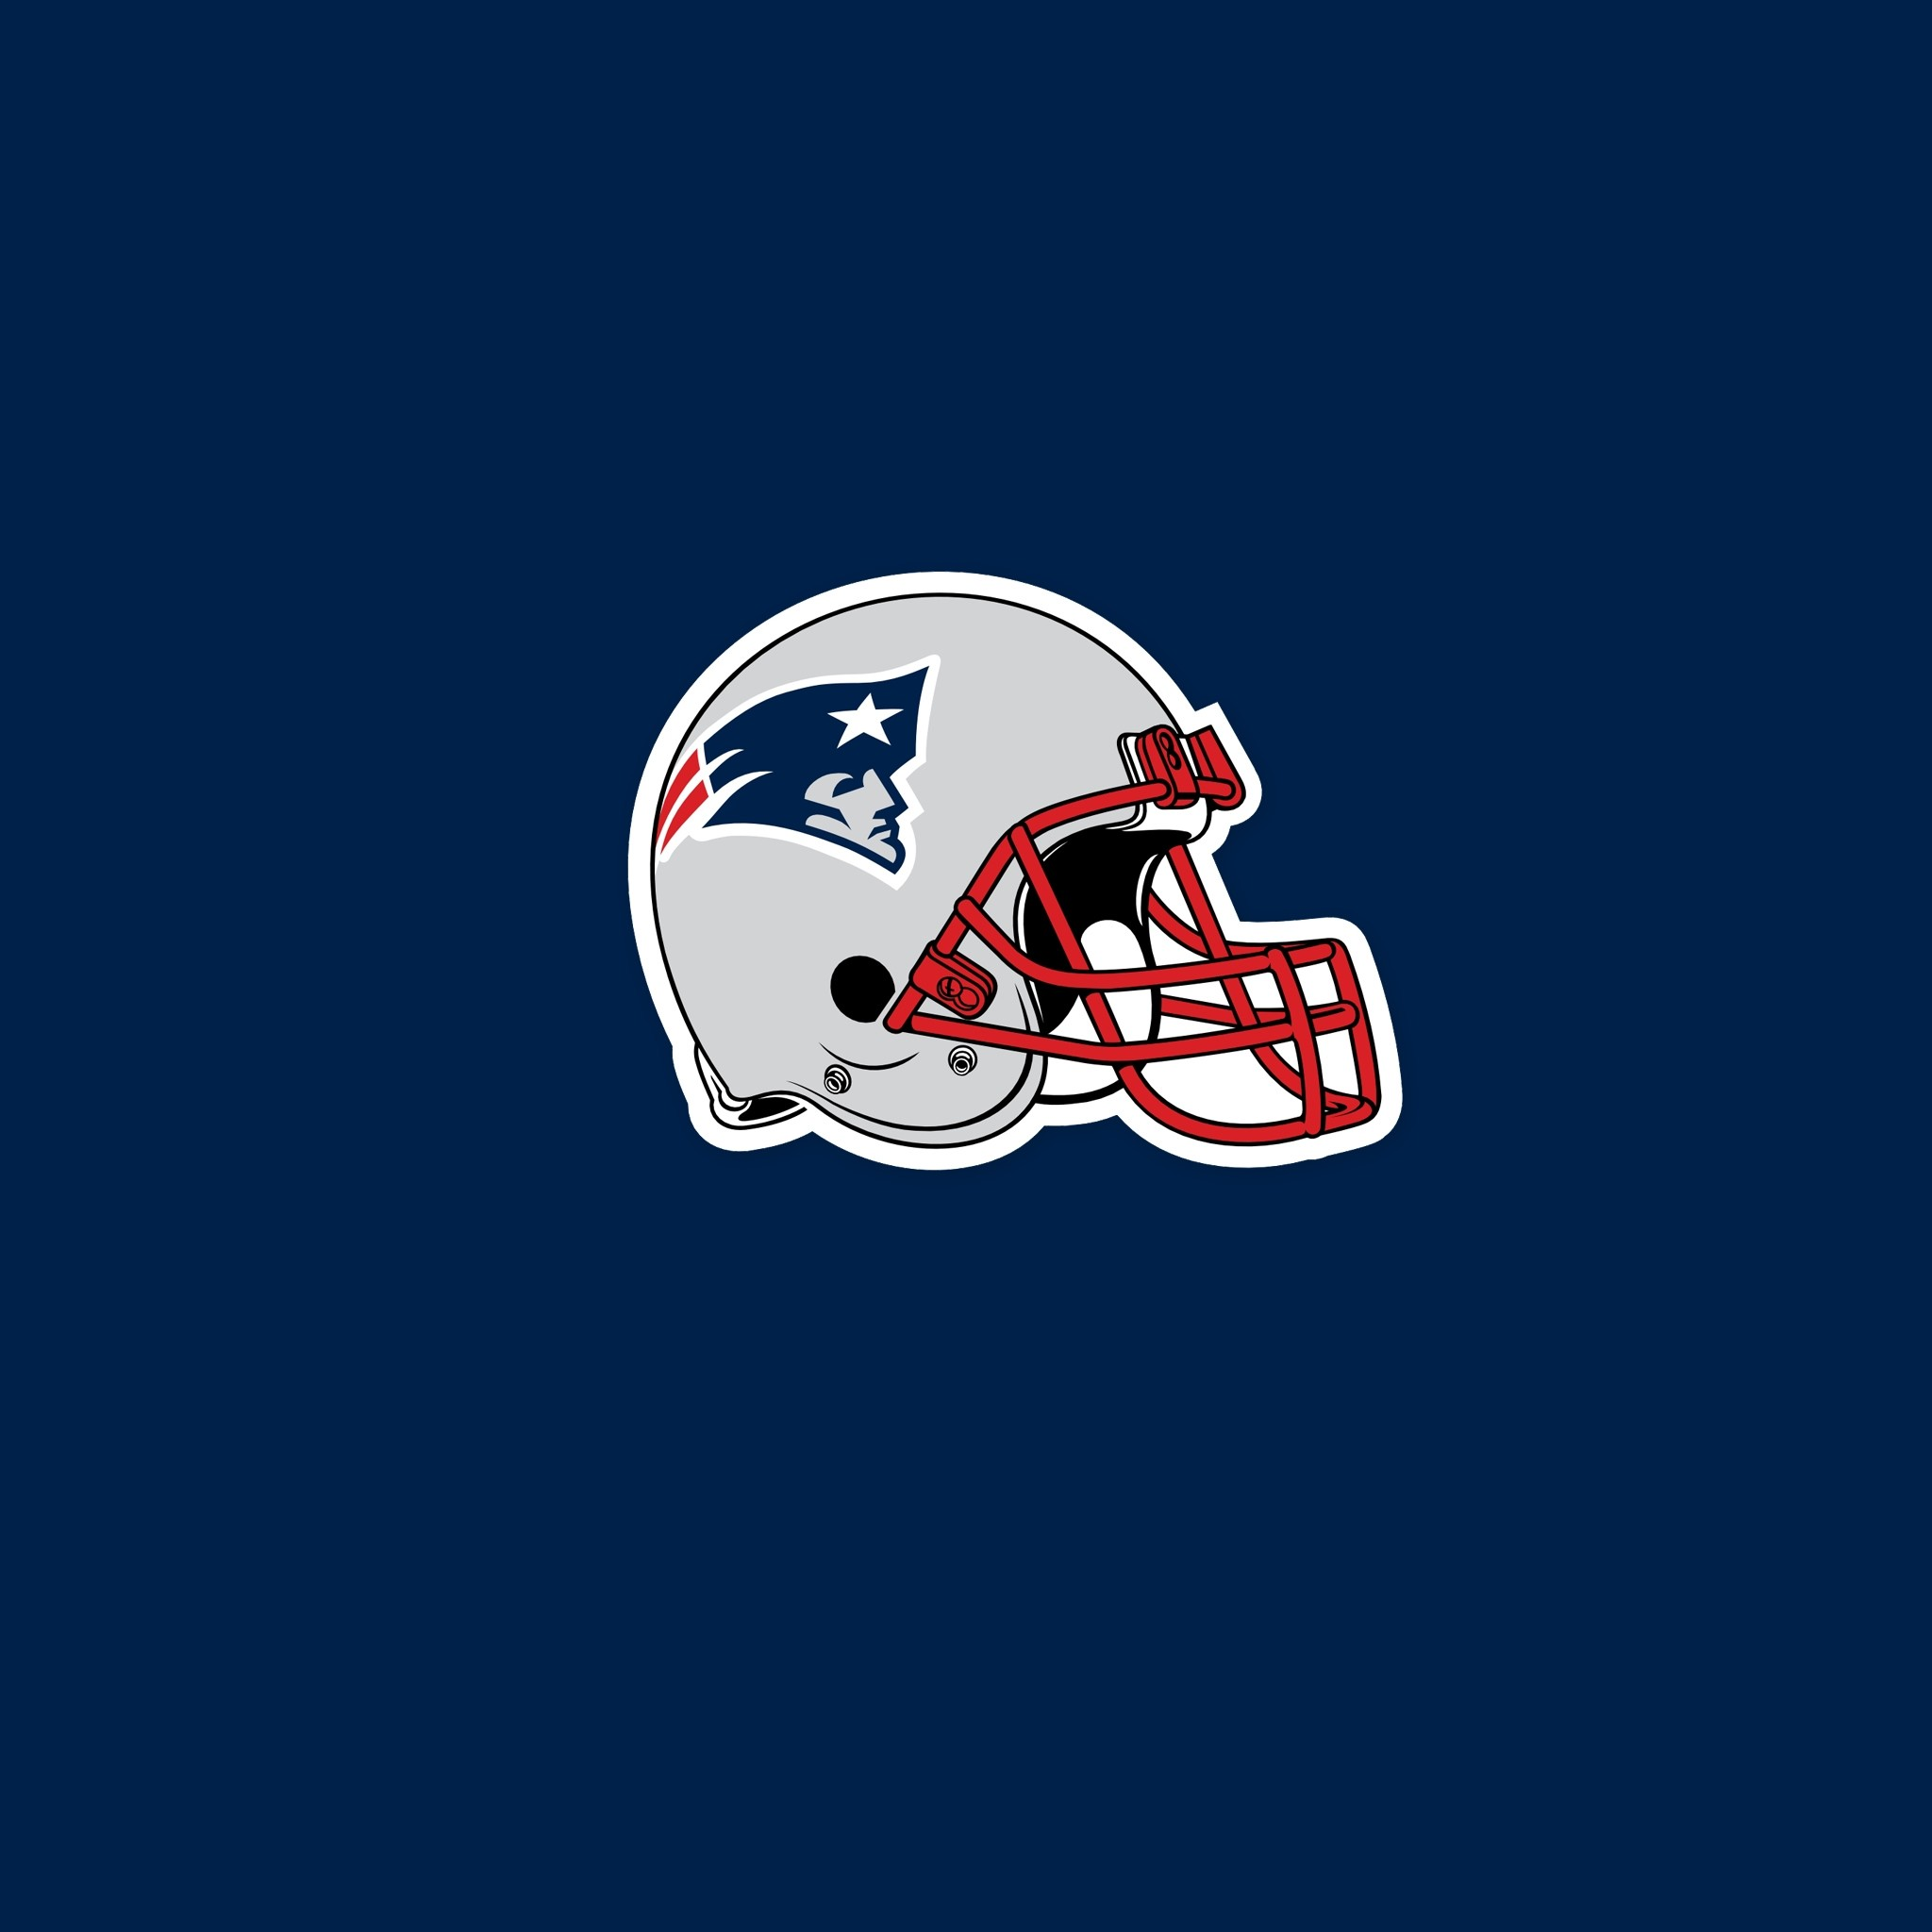 2048x2048 ... new england patriots iphone wallpaper patriots iphone wallpaper ...